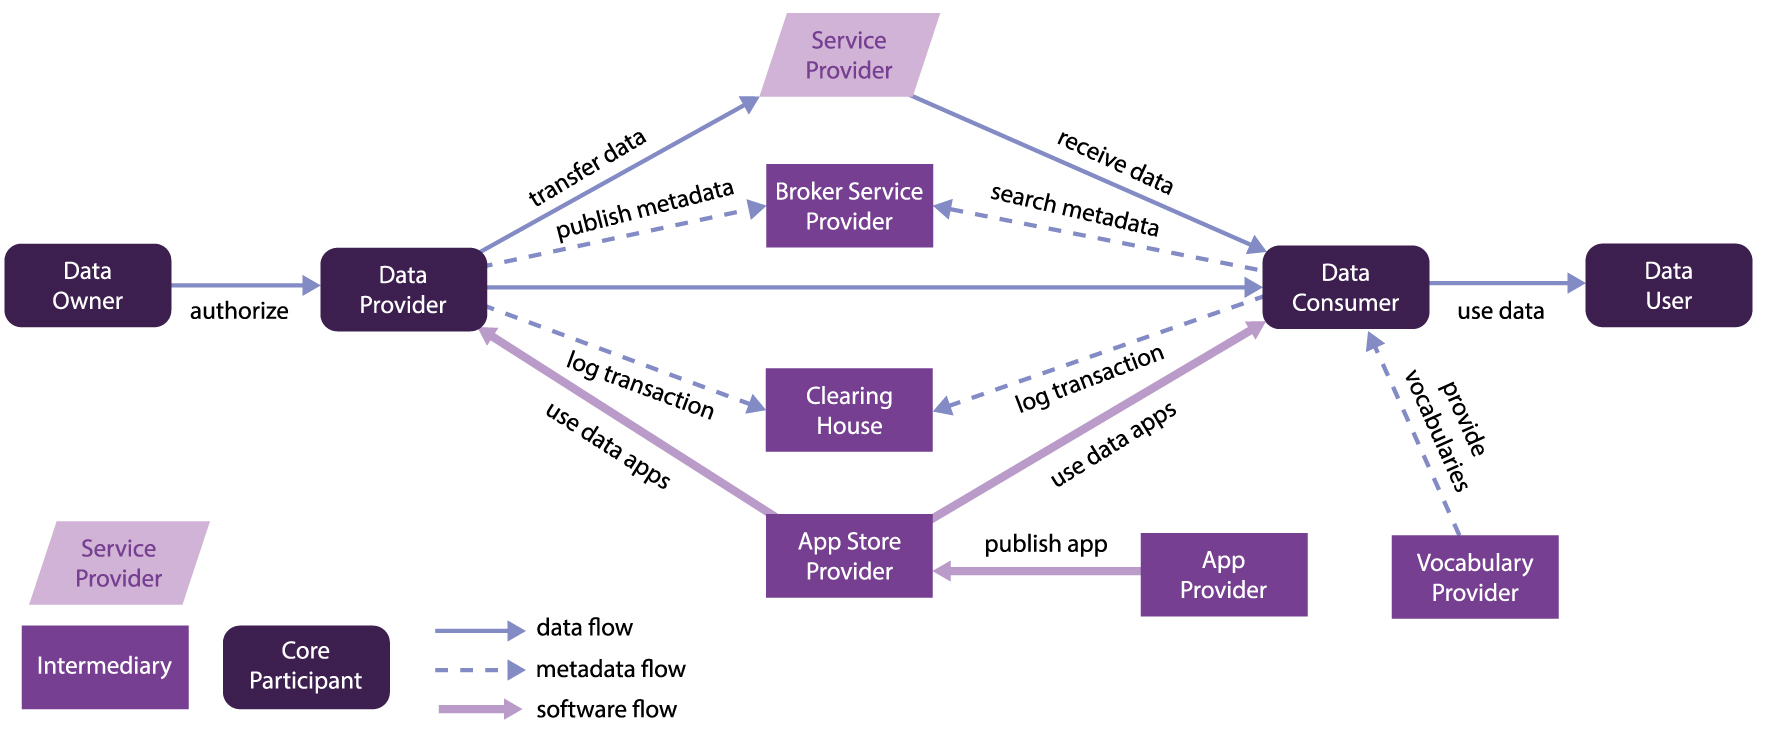 Enabling Secure Information Exchange in Cloud environments white paper - Data lifecycle diagram